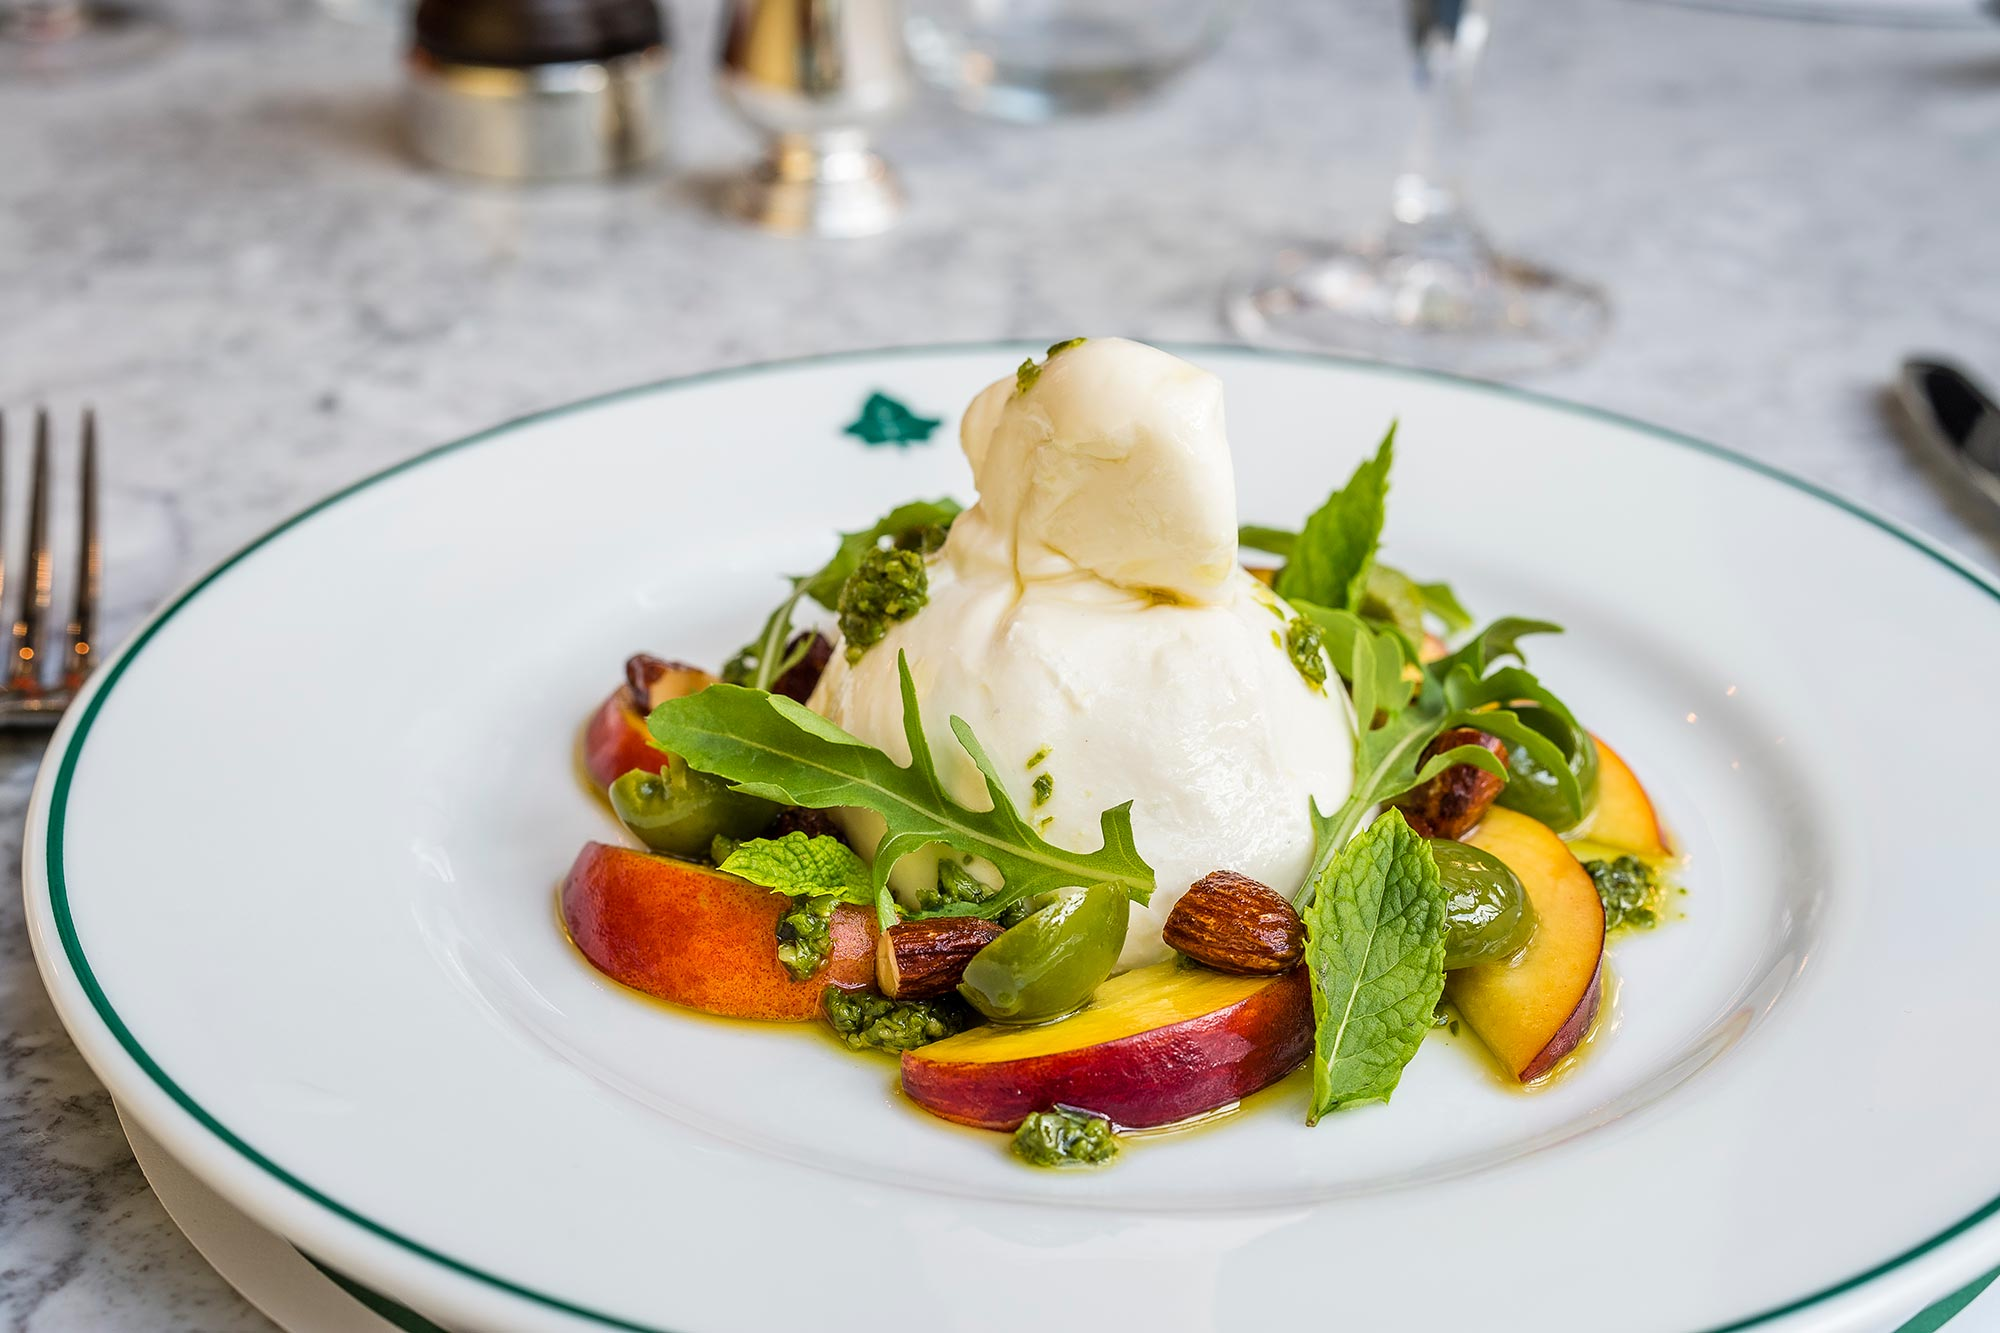 The Ivy Cobham Brasserie - Burrata with Nocellara olive, pesto, rocket and almonds - The Ivy Cobham Brasserie